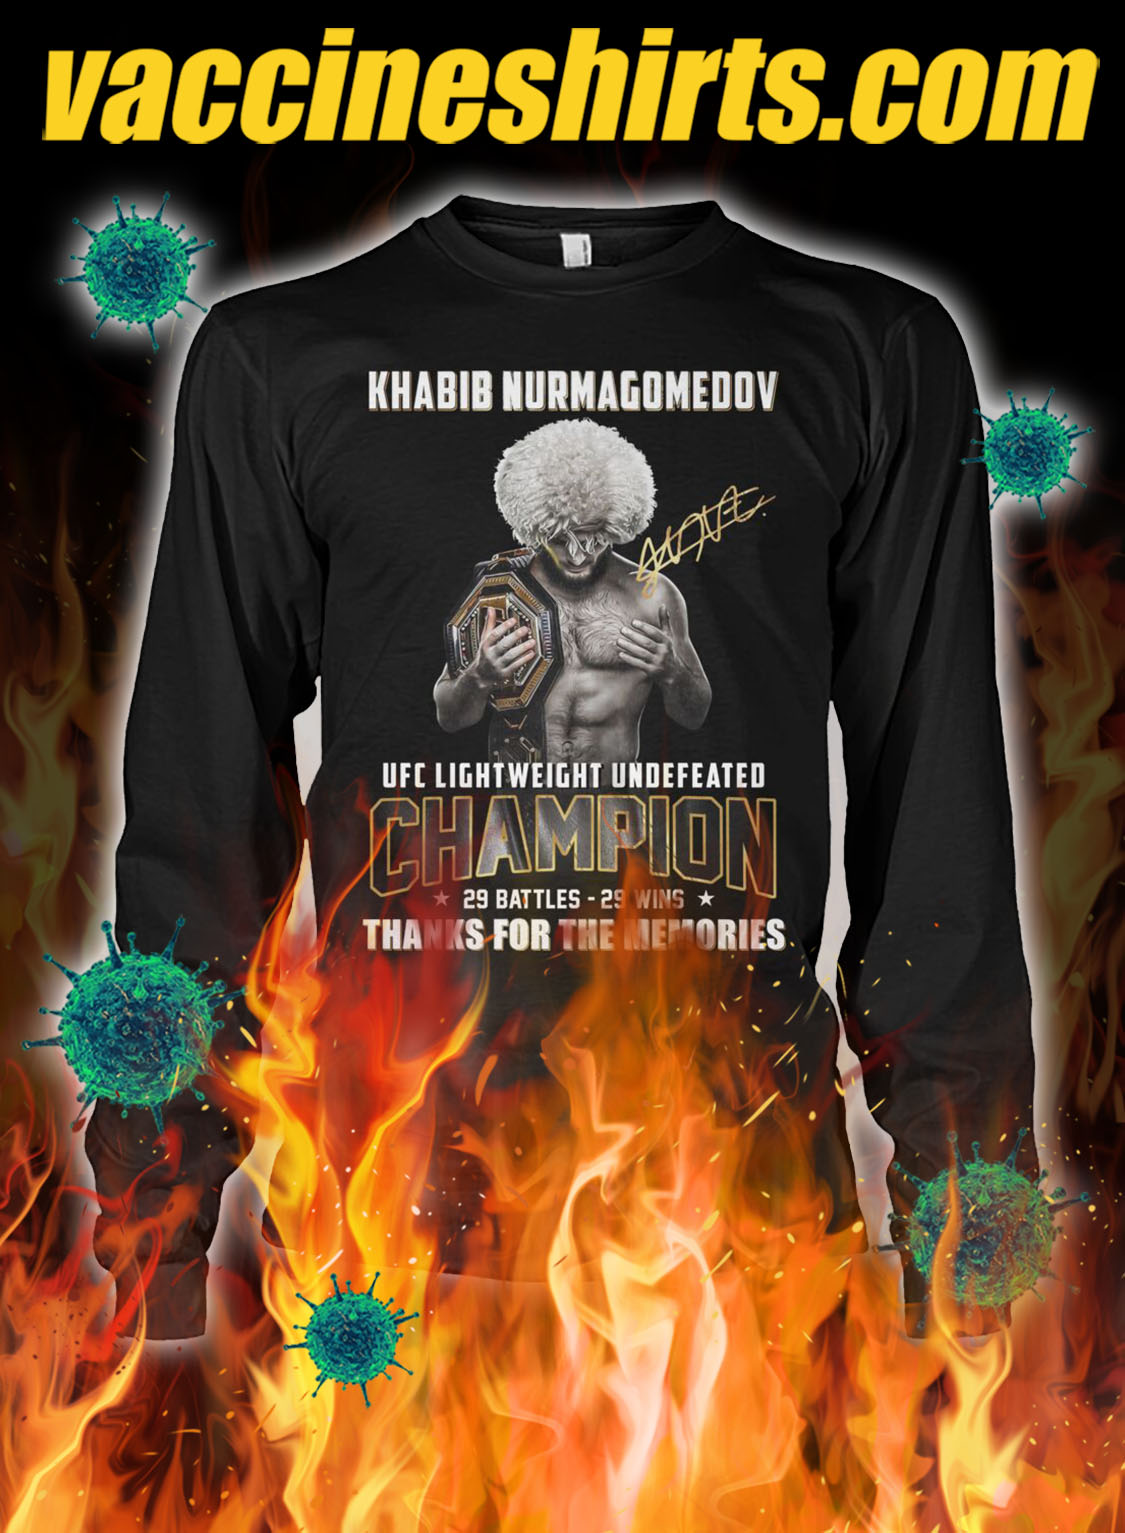 Khabib nurmagomedov ufc lightweight undefeated champion 29 battles 29 wins thanks for the memories longsleeve tee